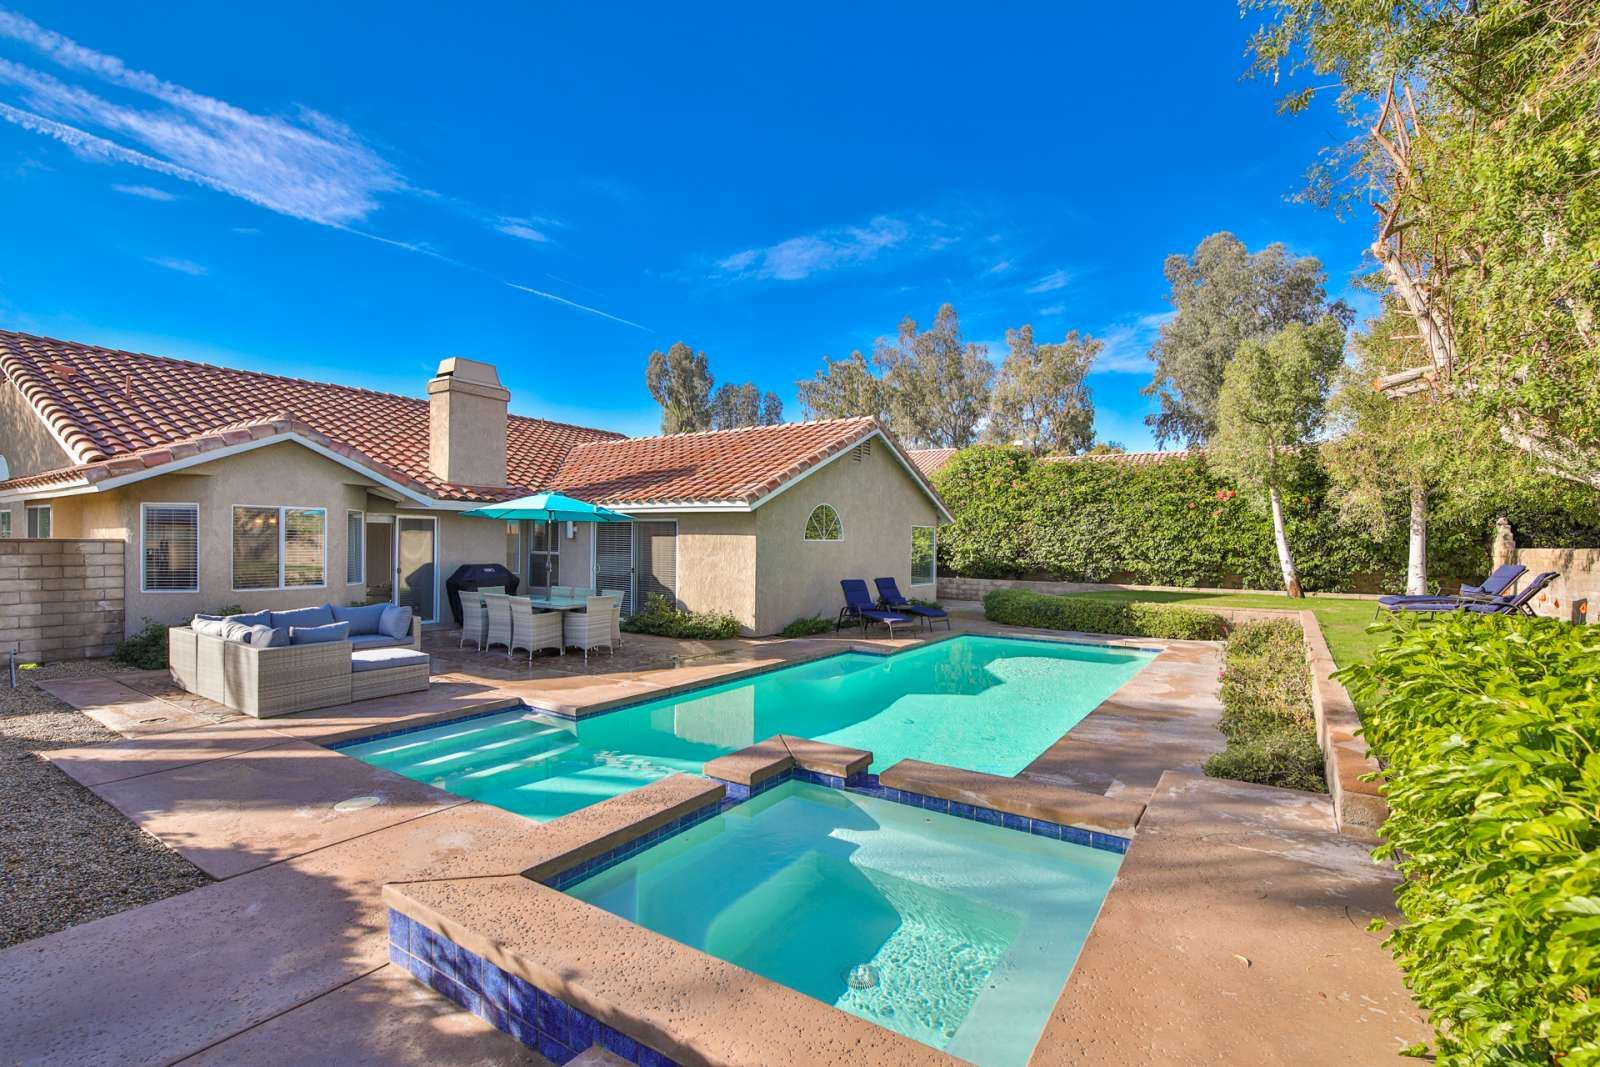 Indian Wells Vacation Rental In 2020 Palm Springs Vacation Rentals Vacation Rancho Mirage